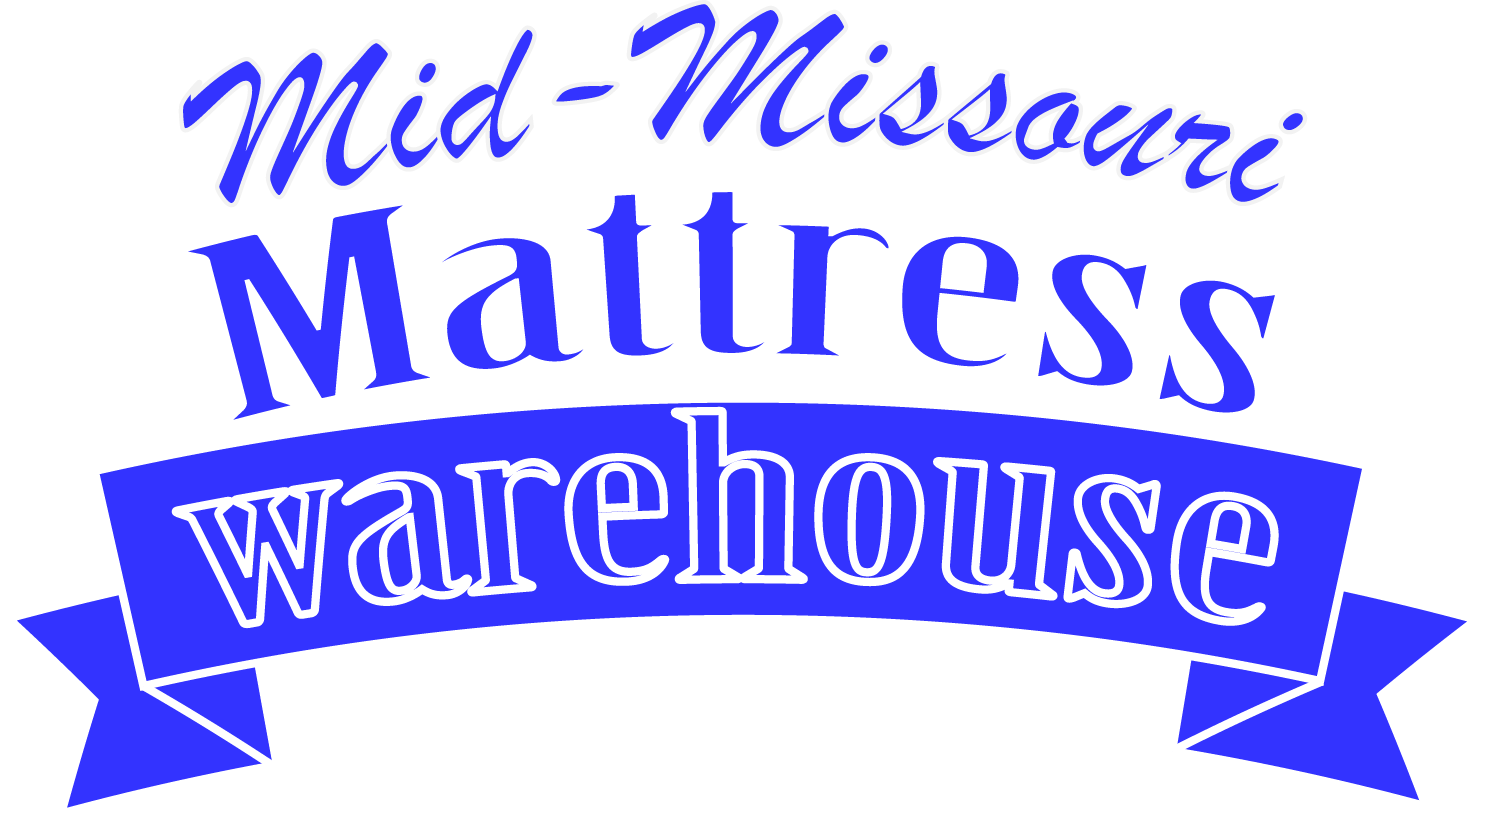 More about Mid-Missouri Mattress